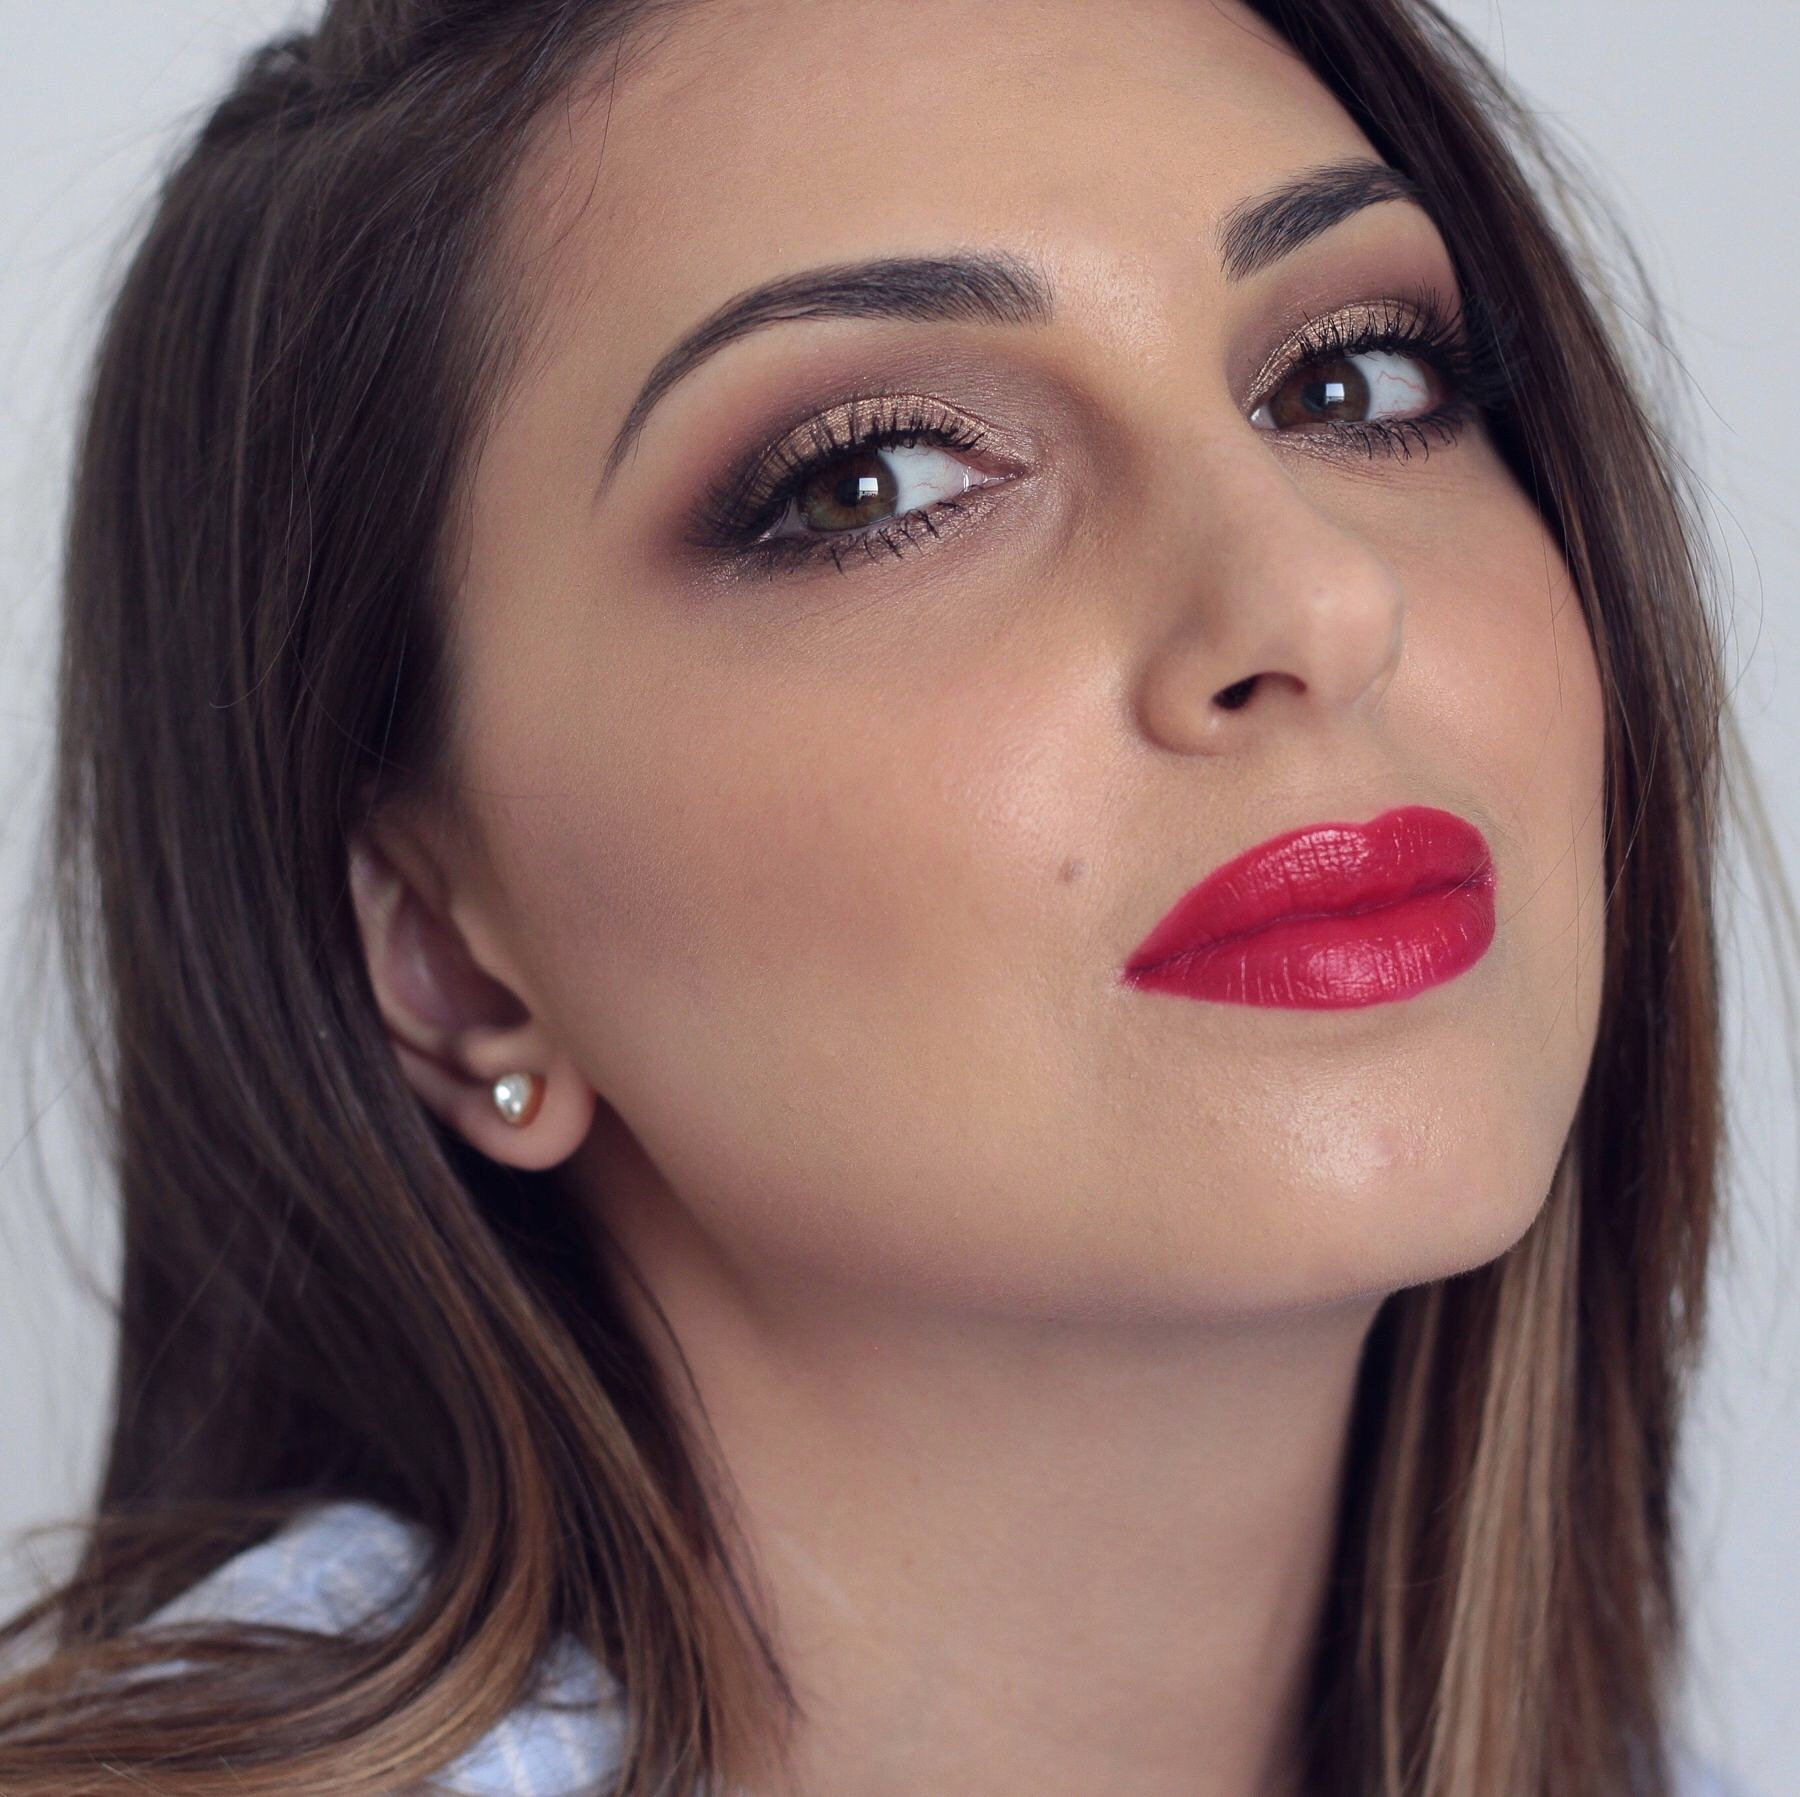 Post nadia zayat get the look red lips makeup tutorial 2018 video baditri Choice Image